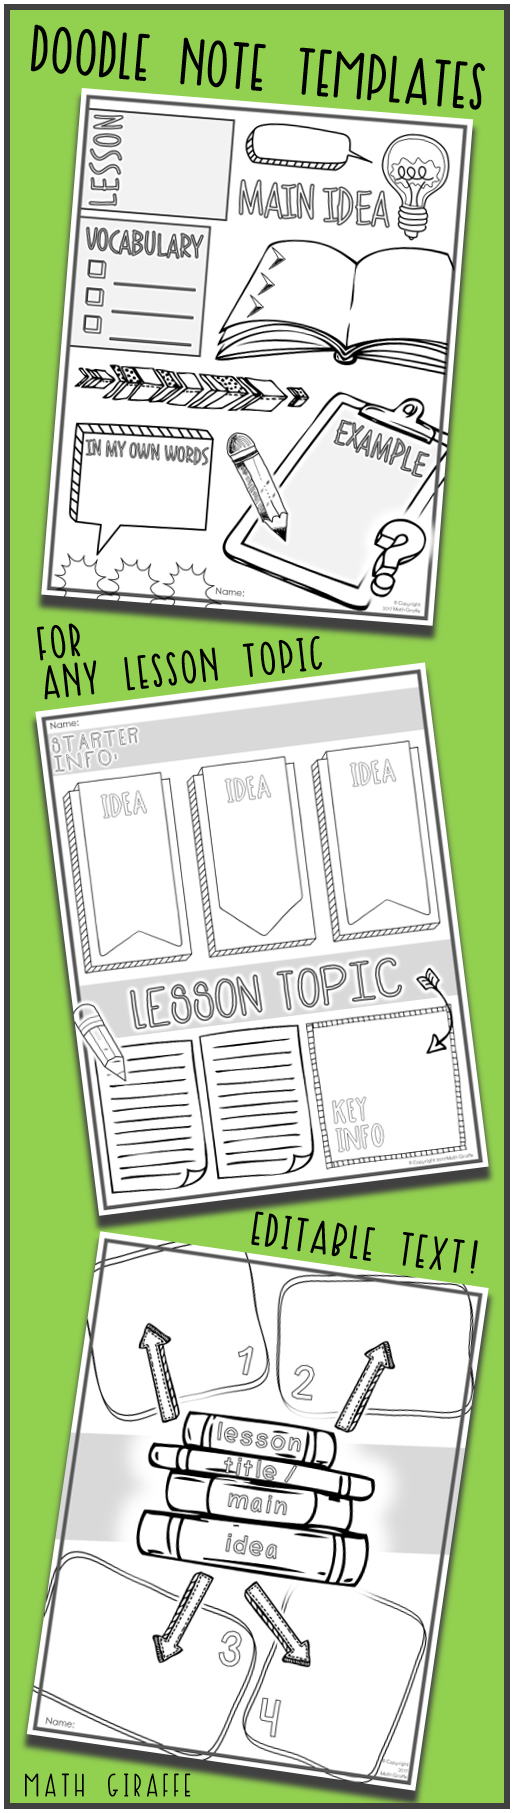 editable doodle note templates set 1 math giraffe products tpt